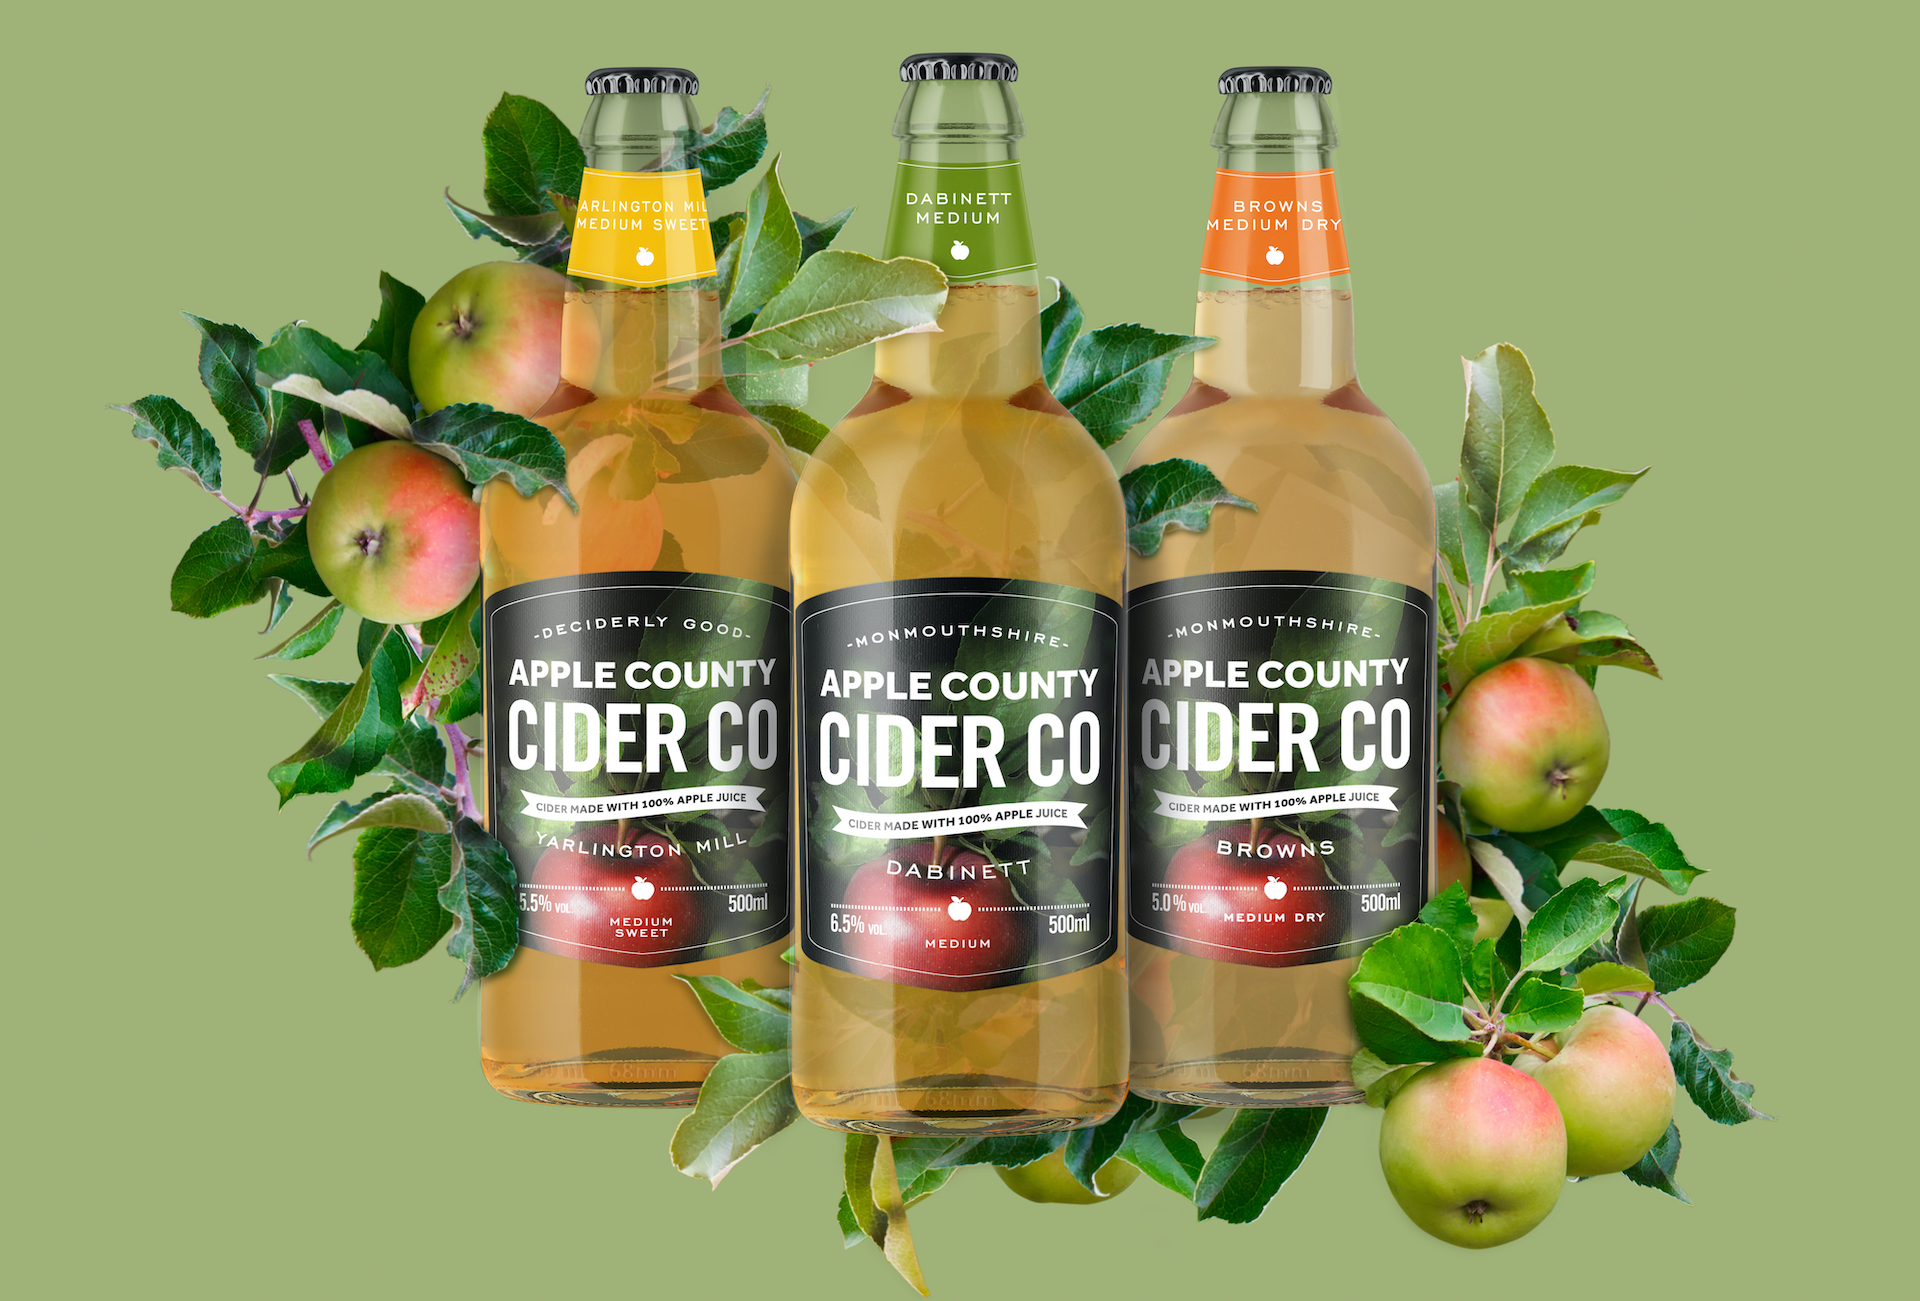 The main range of Apple County Cider Company ciders in bottles